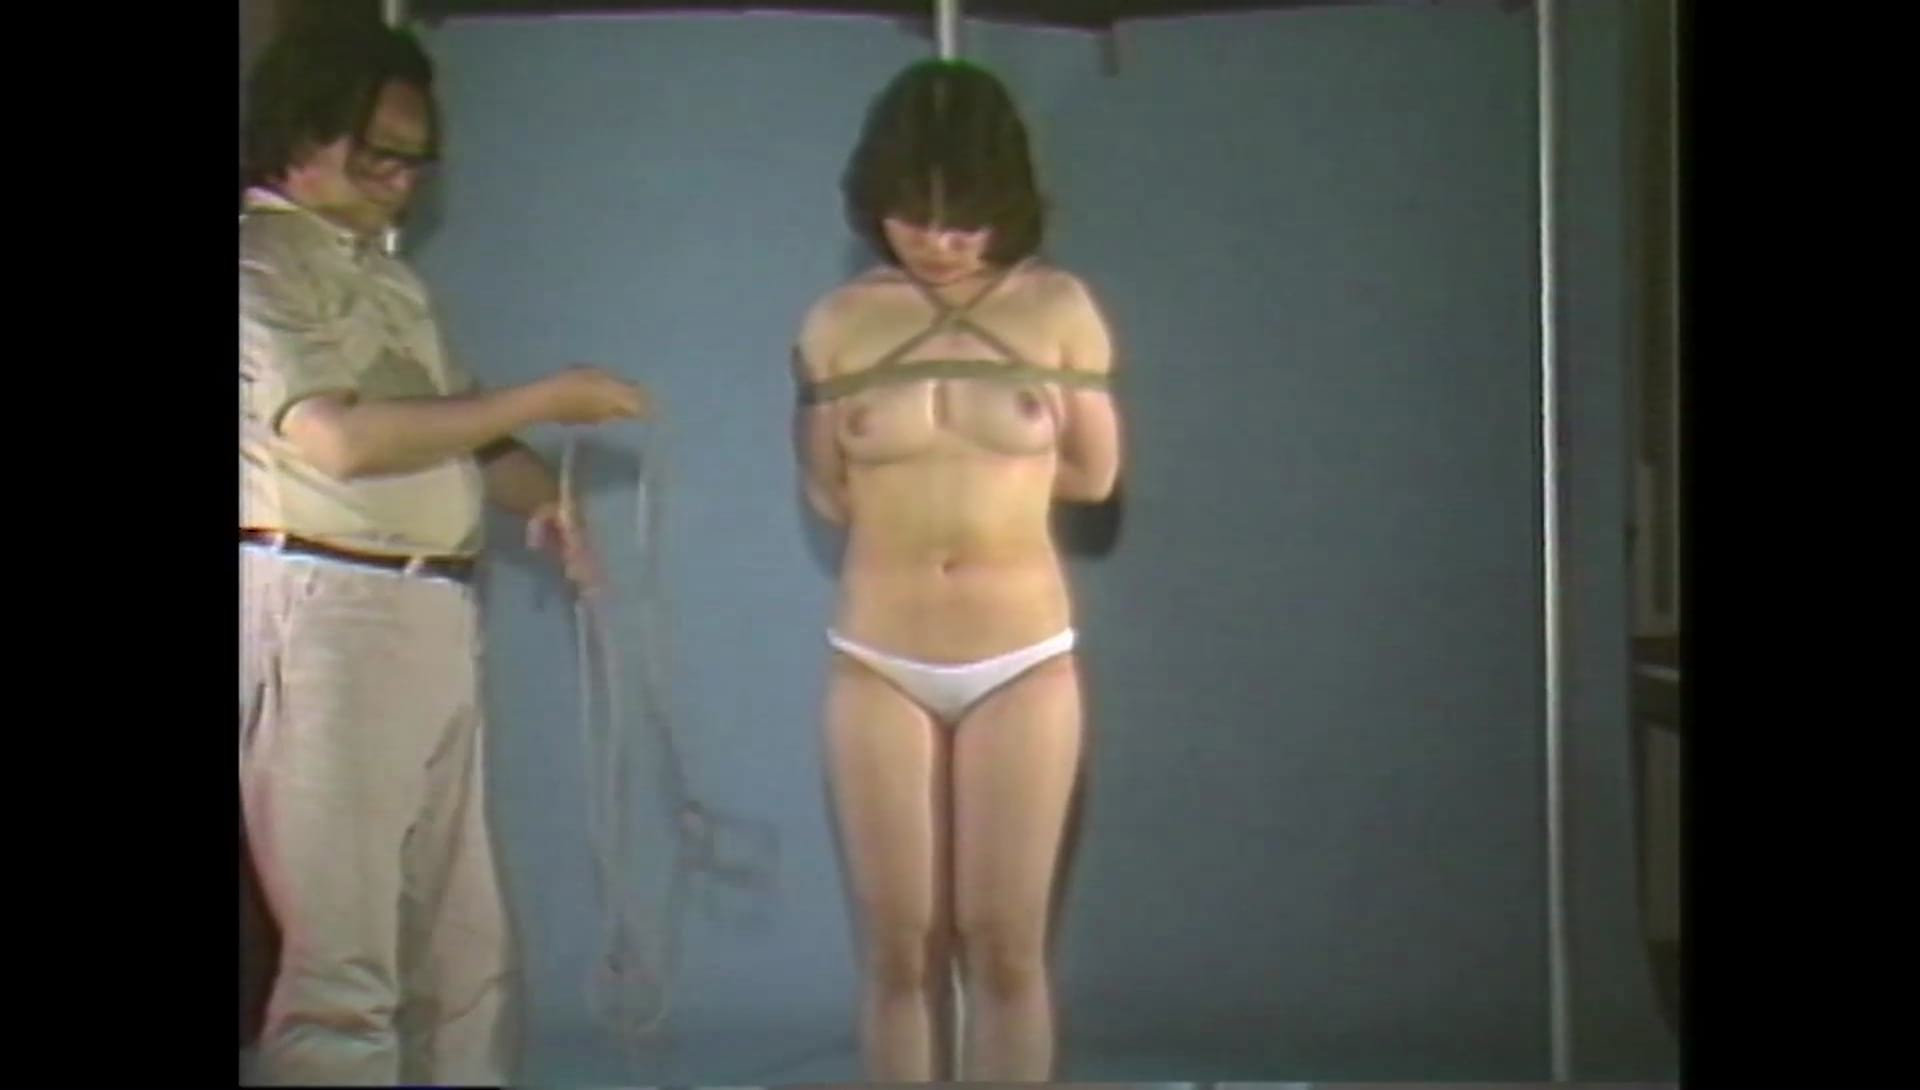 Nureki: Introductory Guide for Shibari No. 5 Japanese Bondage